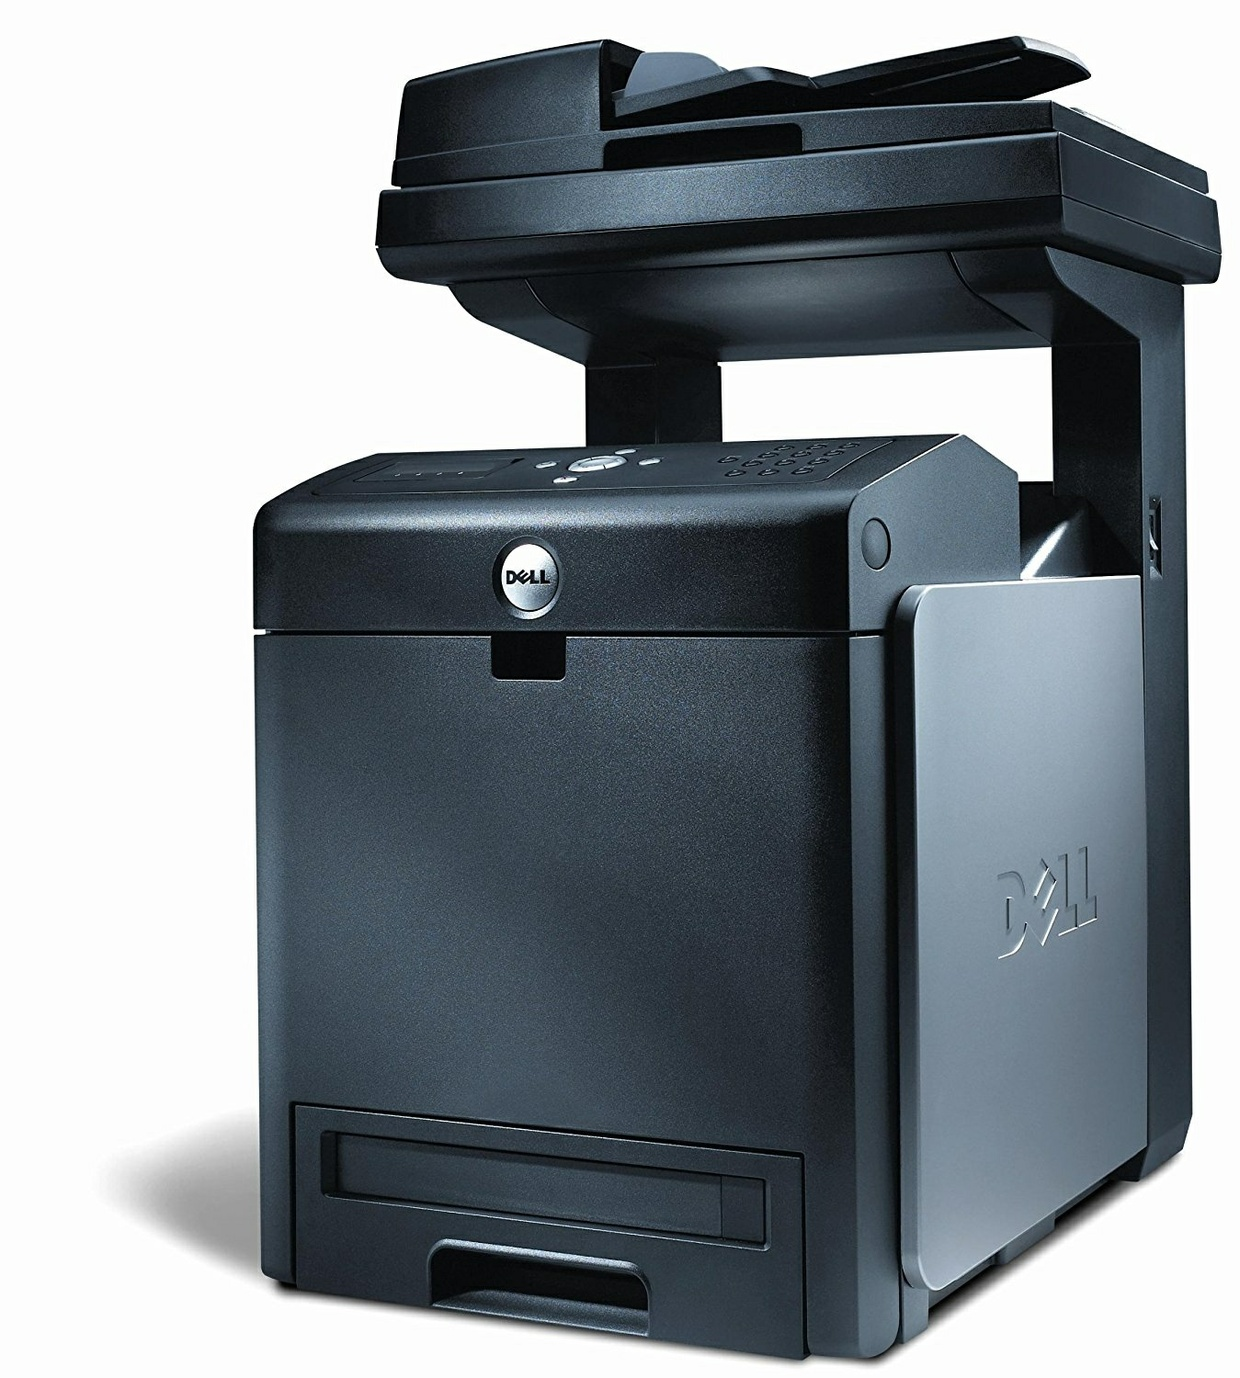 Dell 3115cn Color Laser Printer Service Repair Manual